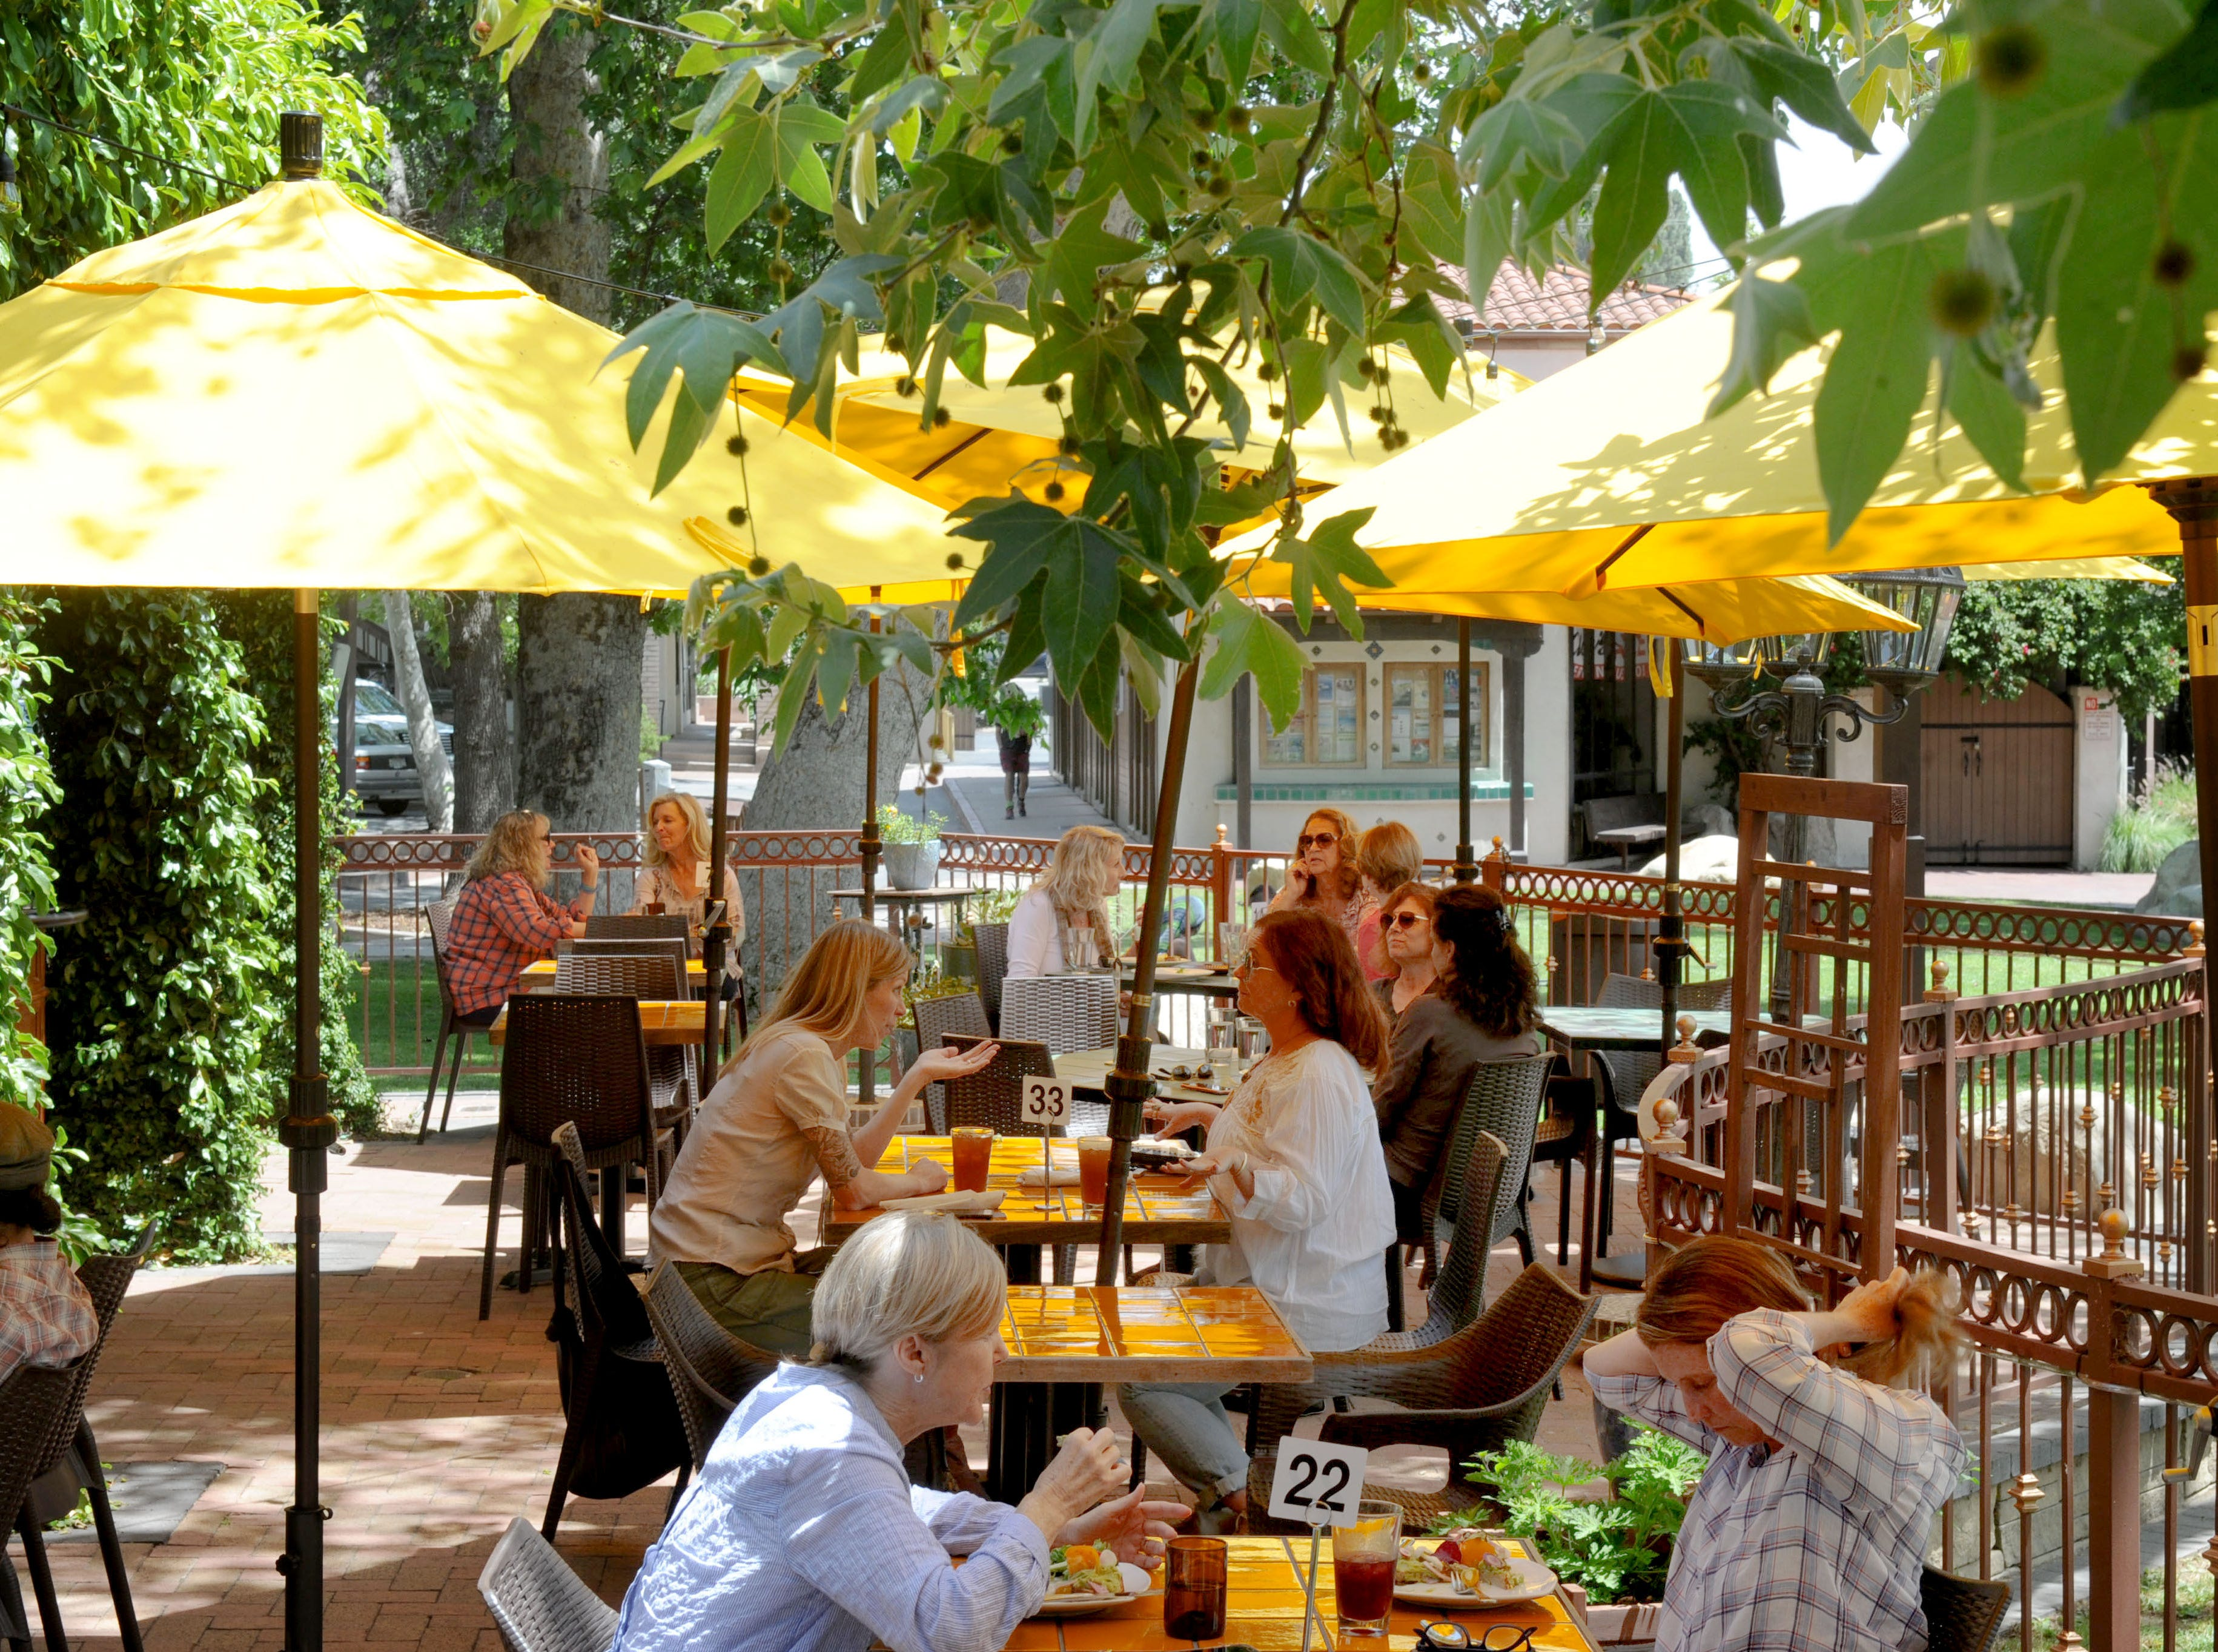 A group of people enjoy lunch at the outdoor patio at Sage Mindful Meals and Elixirs in Ojai.